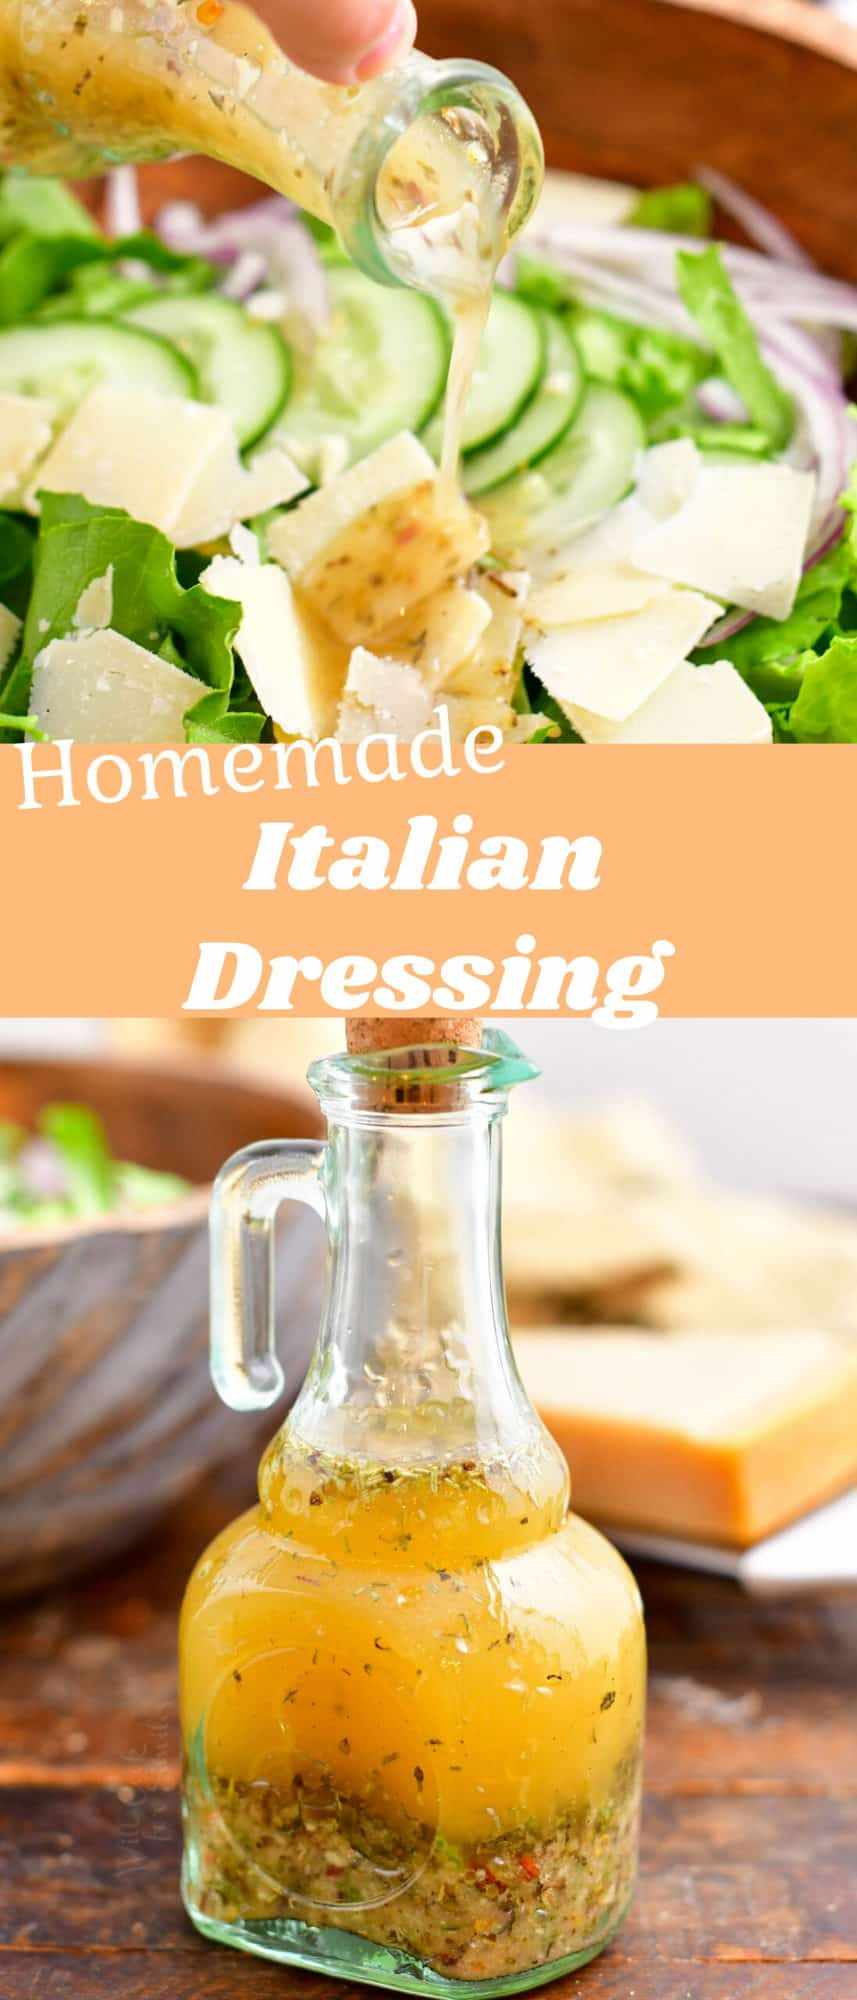 titled photo collage (and shown): homemade Italian dressing